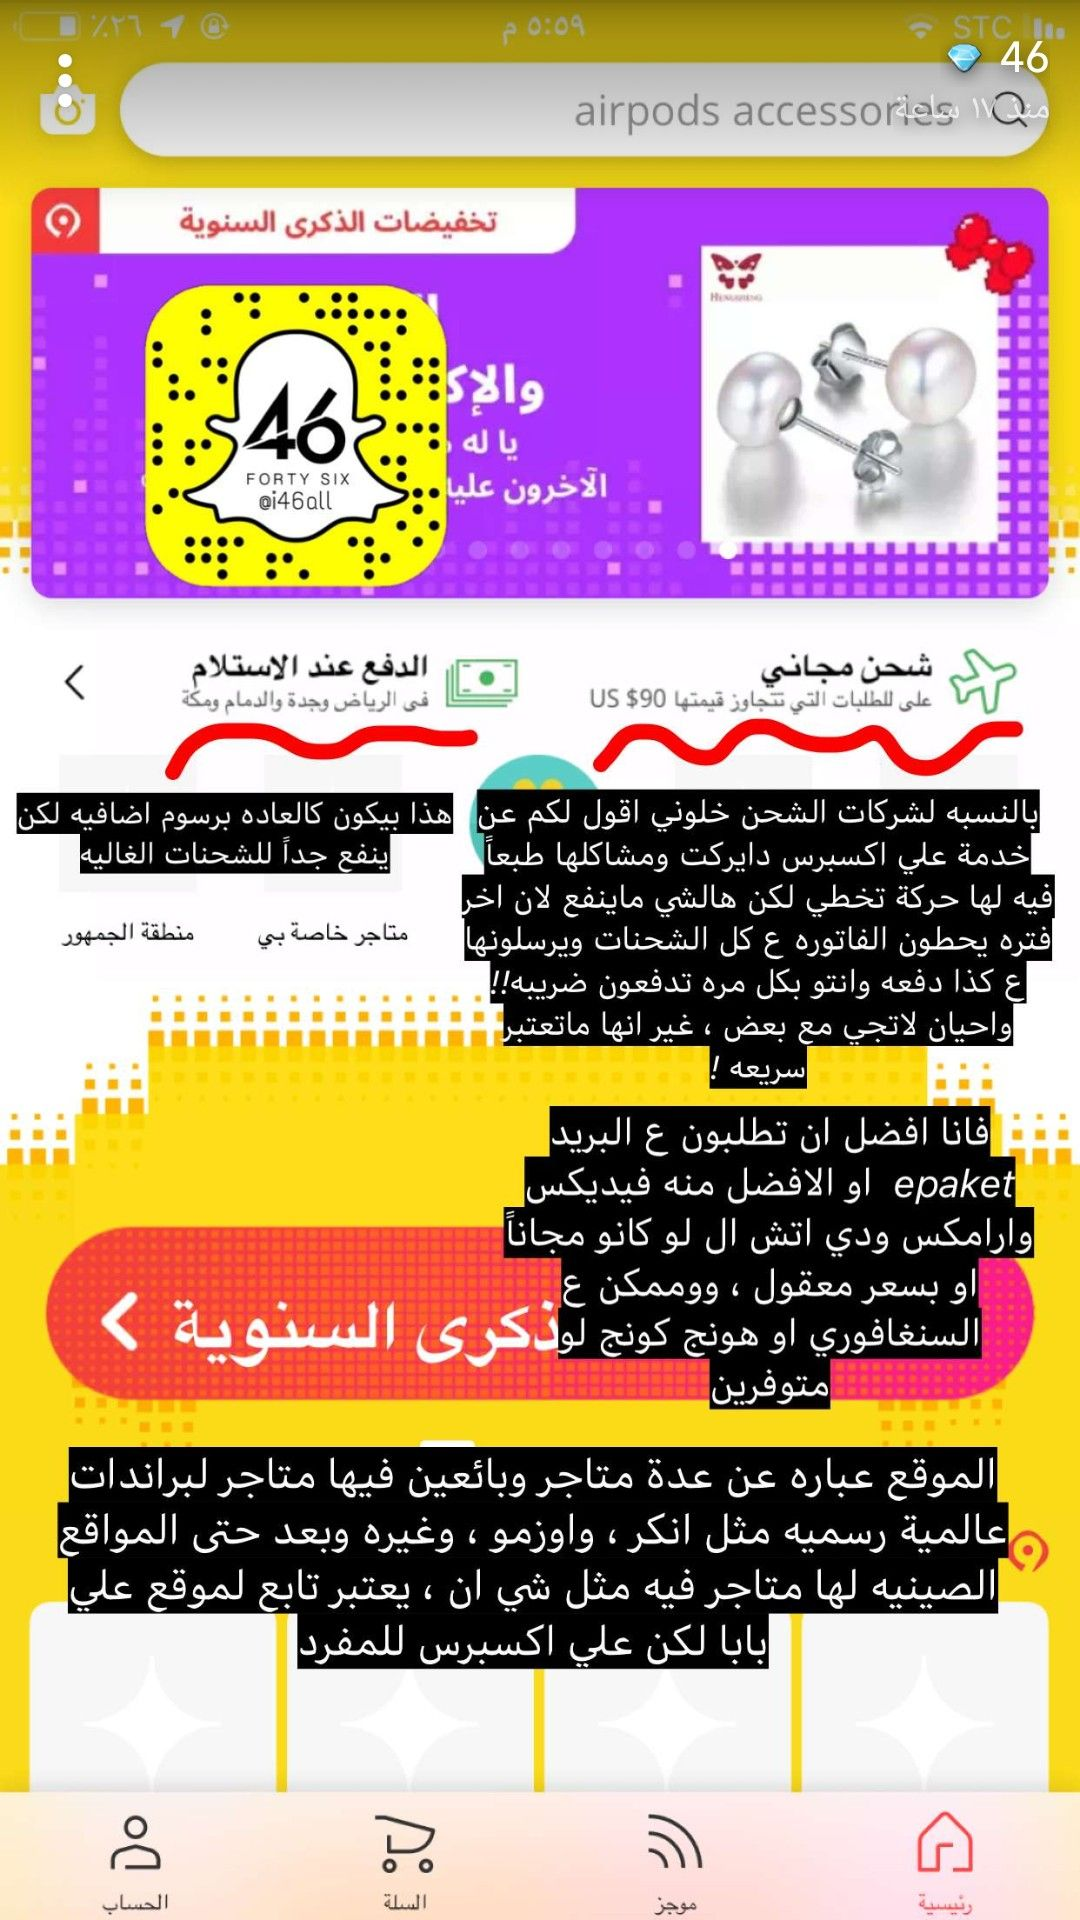 Pin By وهم On برامج مفيدة Online Shopping Clothes Shopping Outfit Health And Beauty